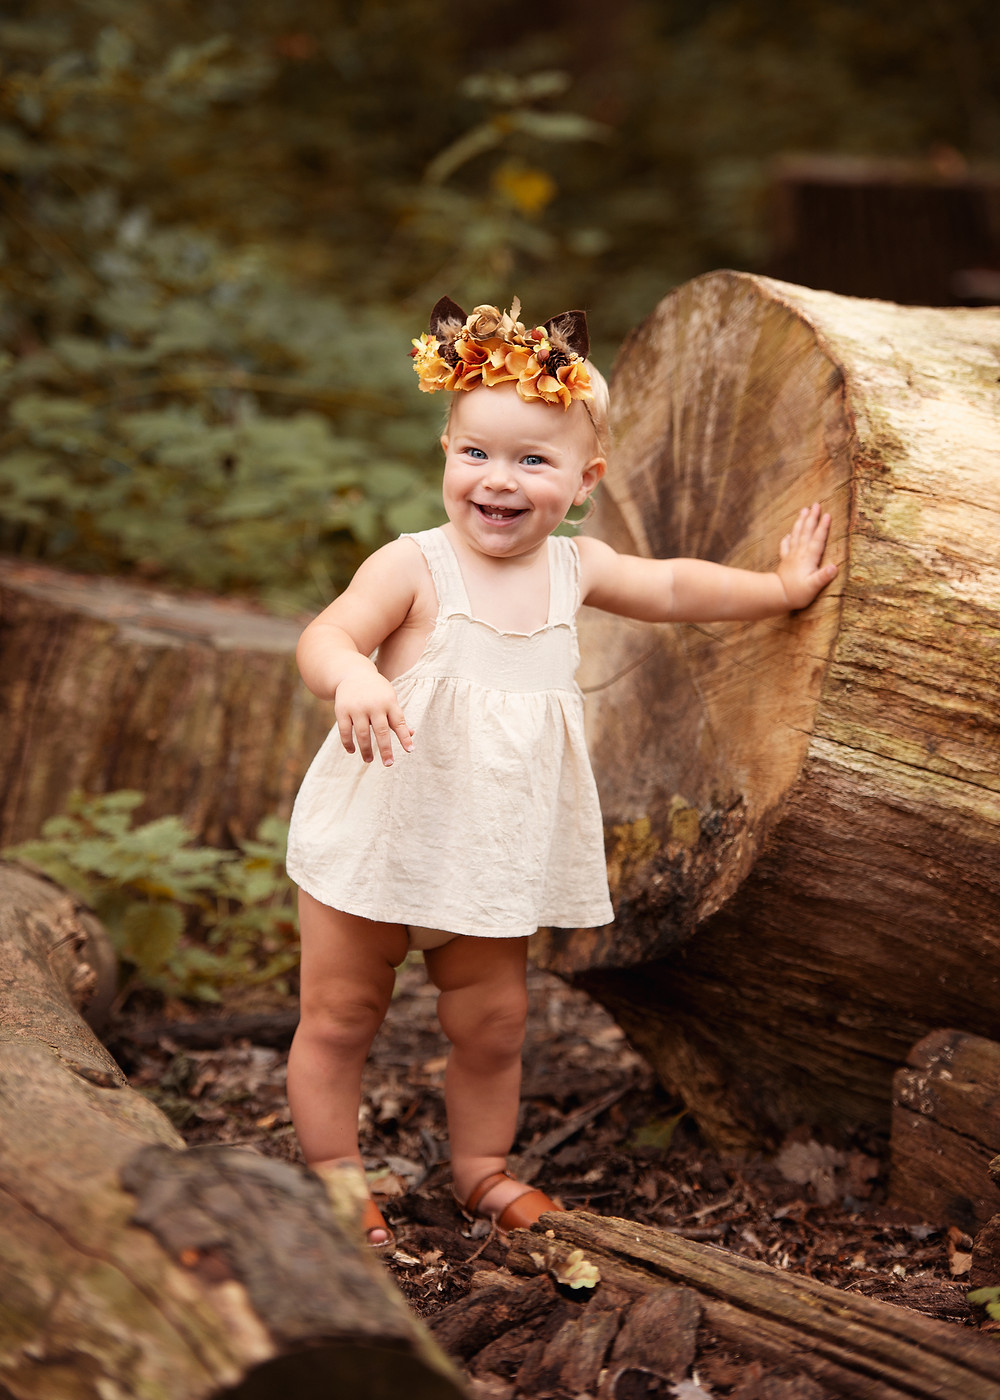 This image of the gorgeous little Florence was taken in Autumn last year. A perfect example of what you can capture within your mini shoot!